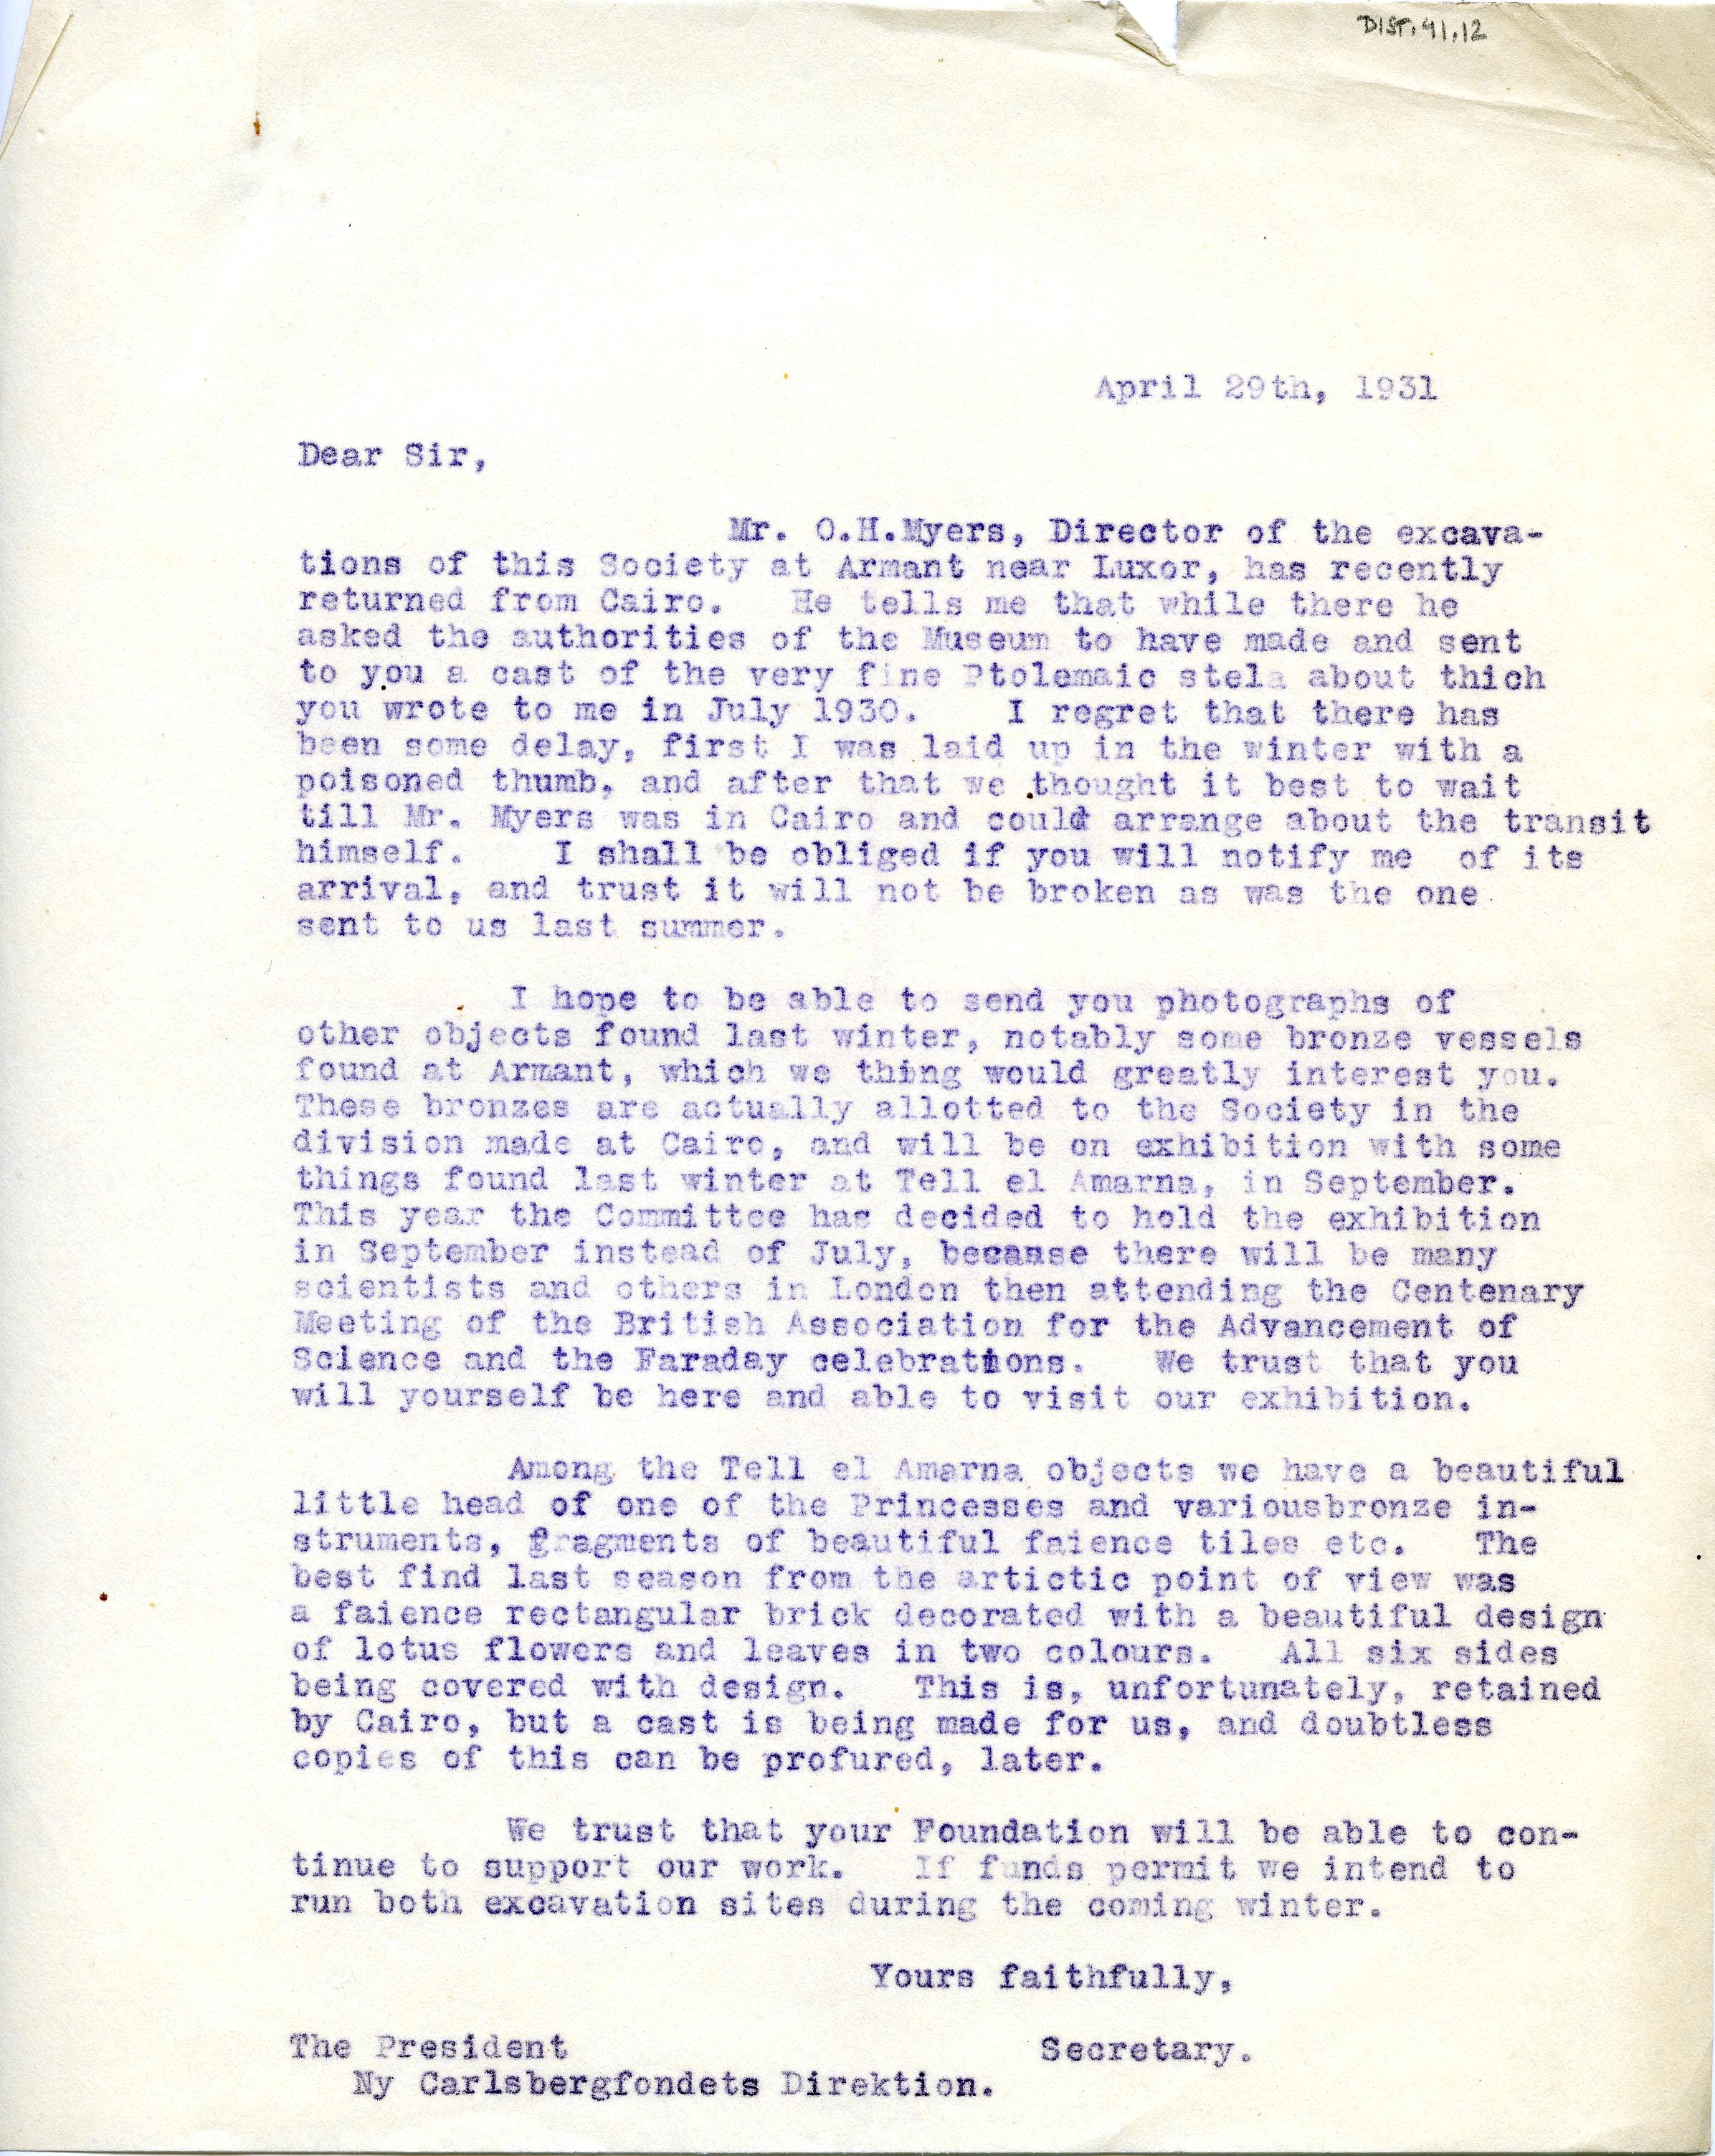 1922-76 Miscellaneous correspondence with museums DIST.41.12